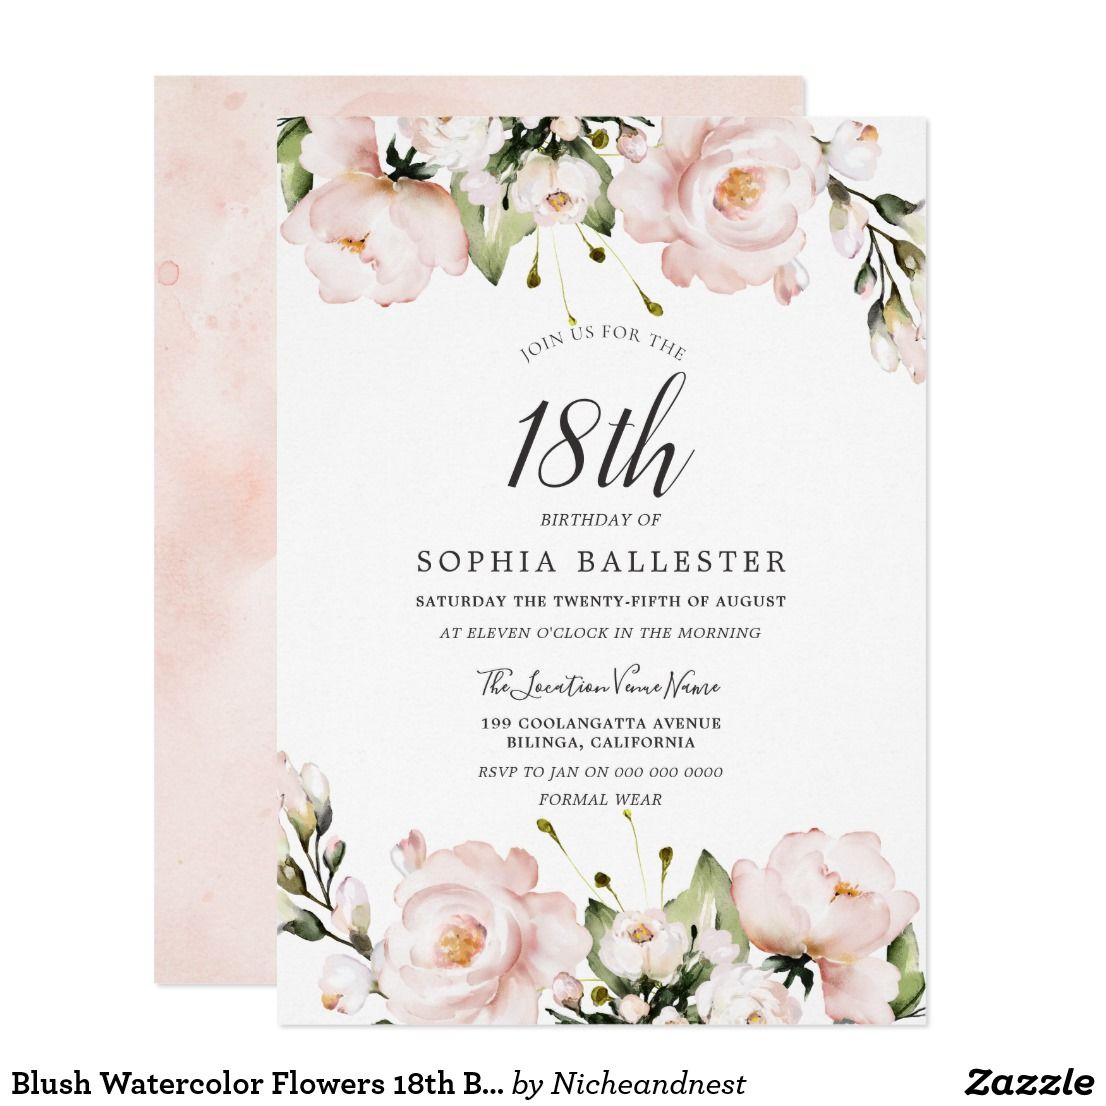 Blush Watercolor Flowers 18th Birthday Party Invitation